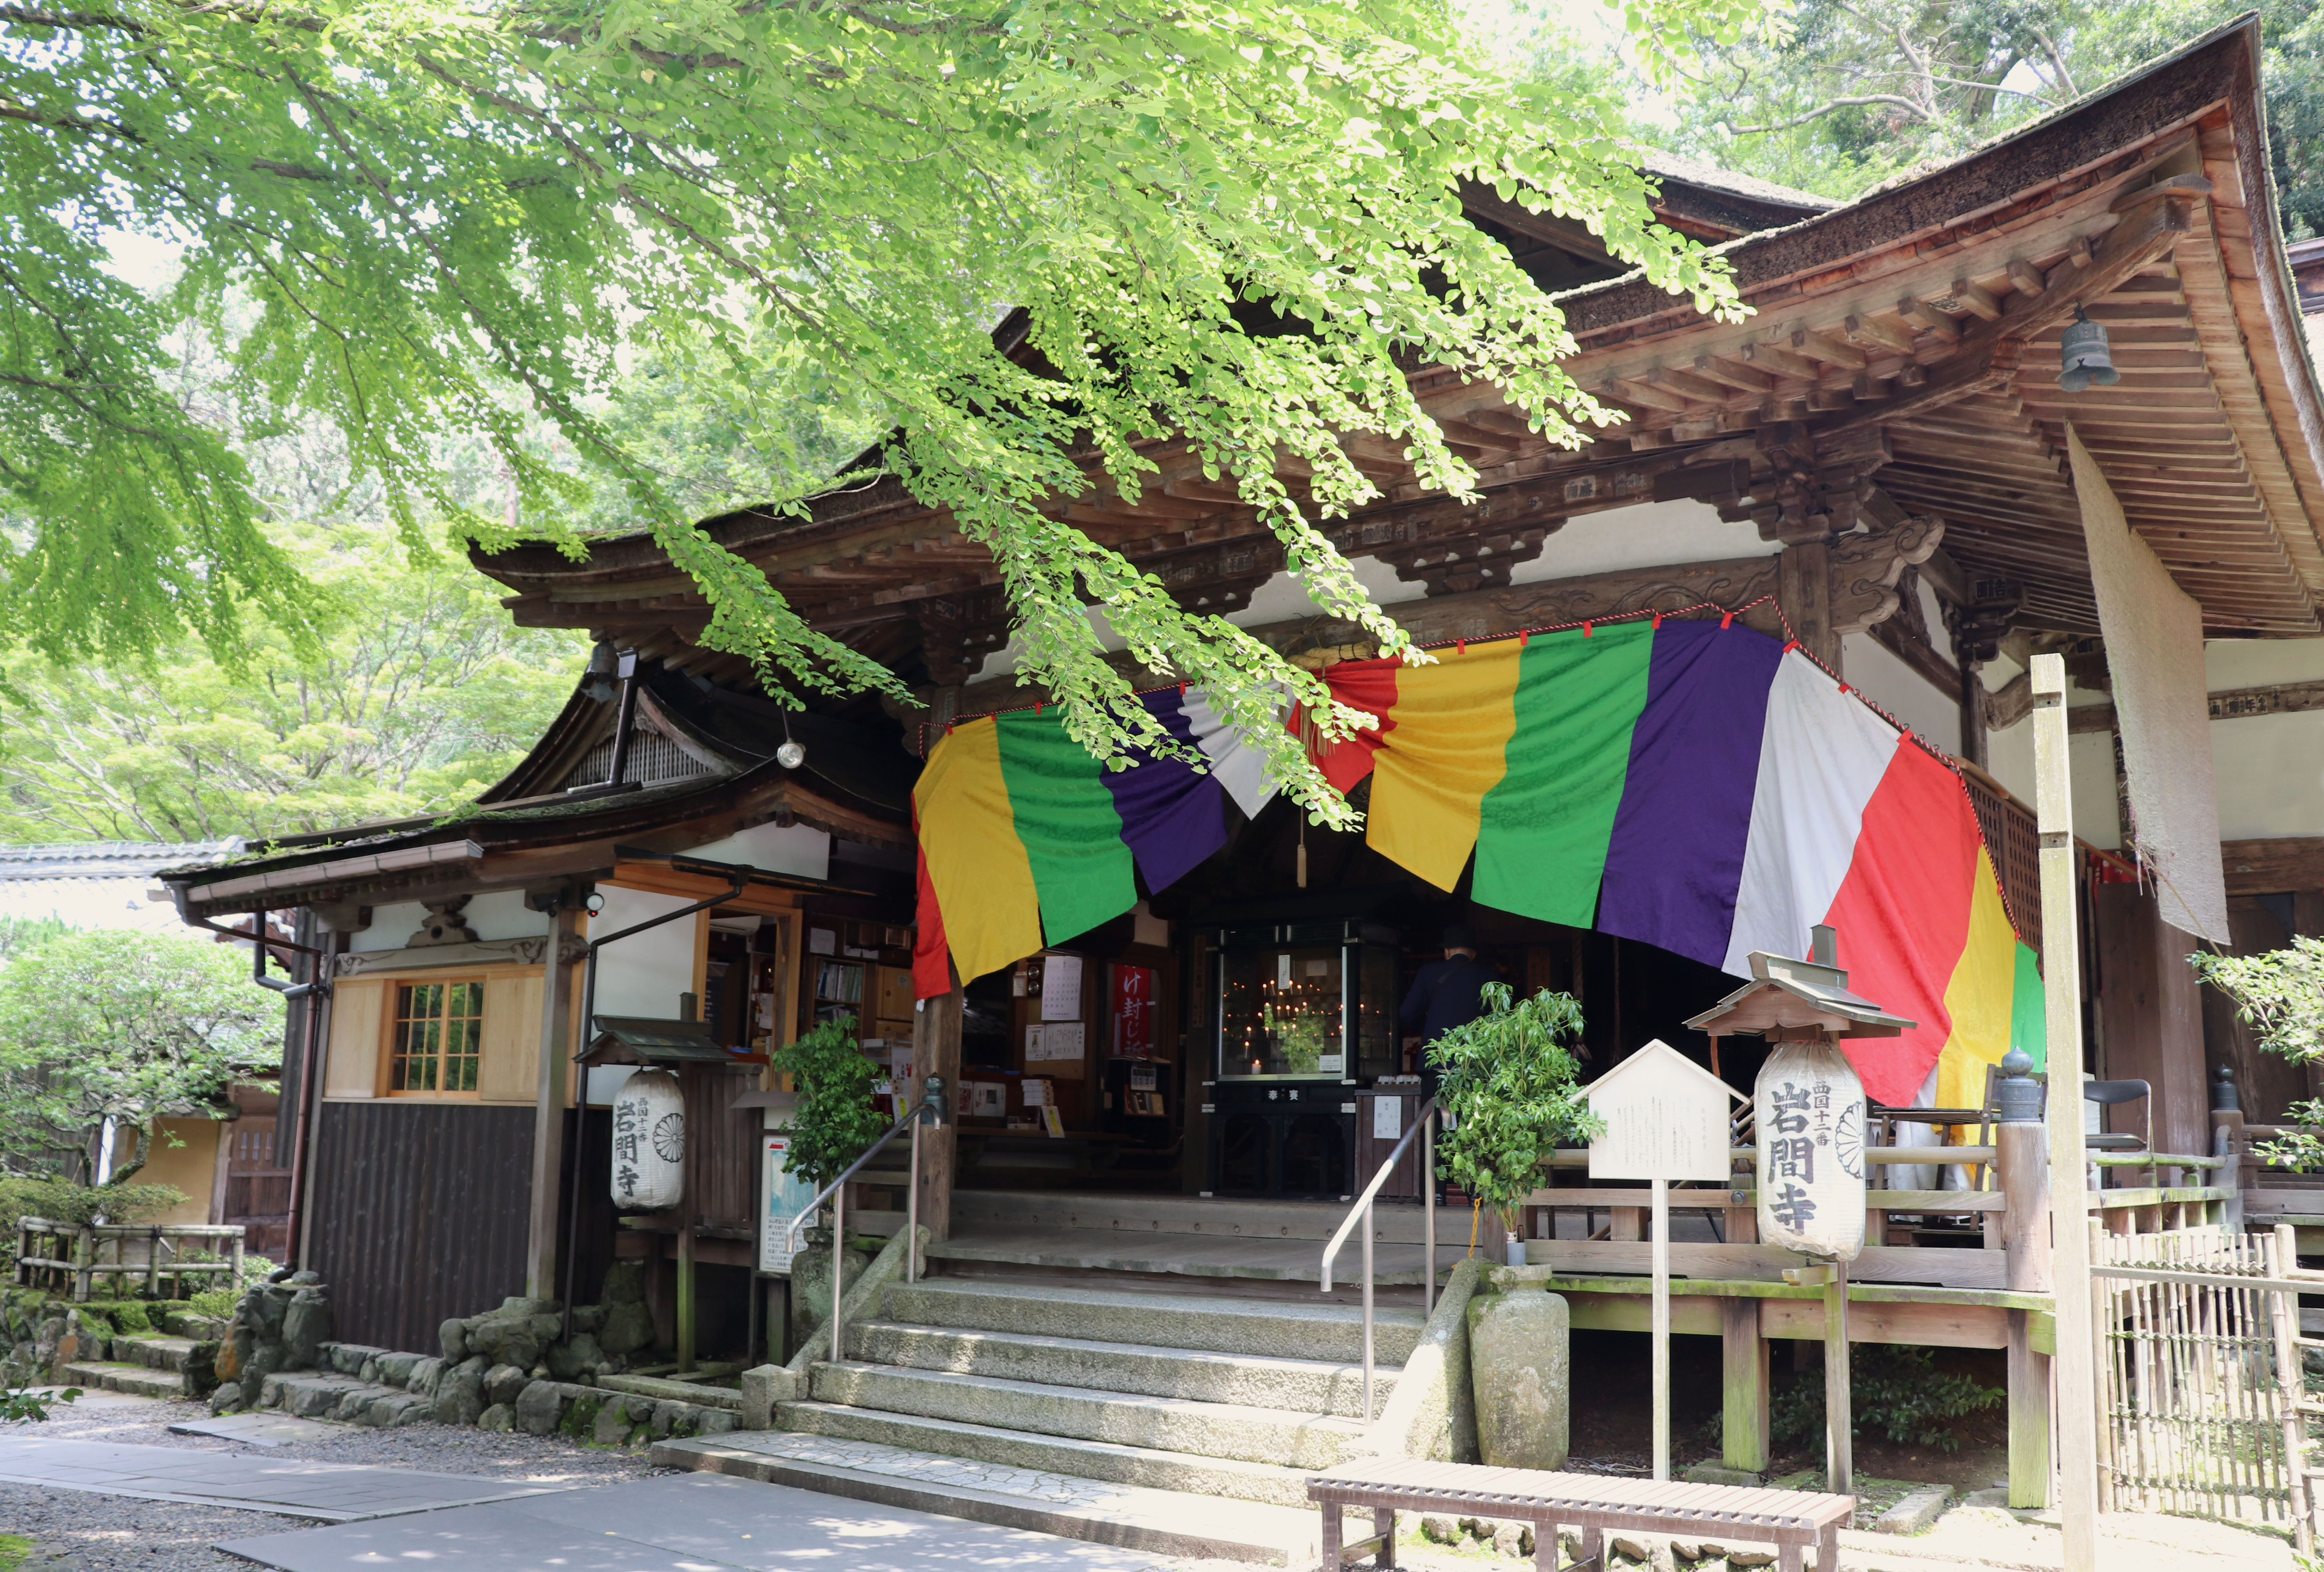 main building of Iwama-dera temple